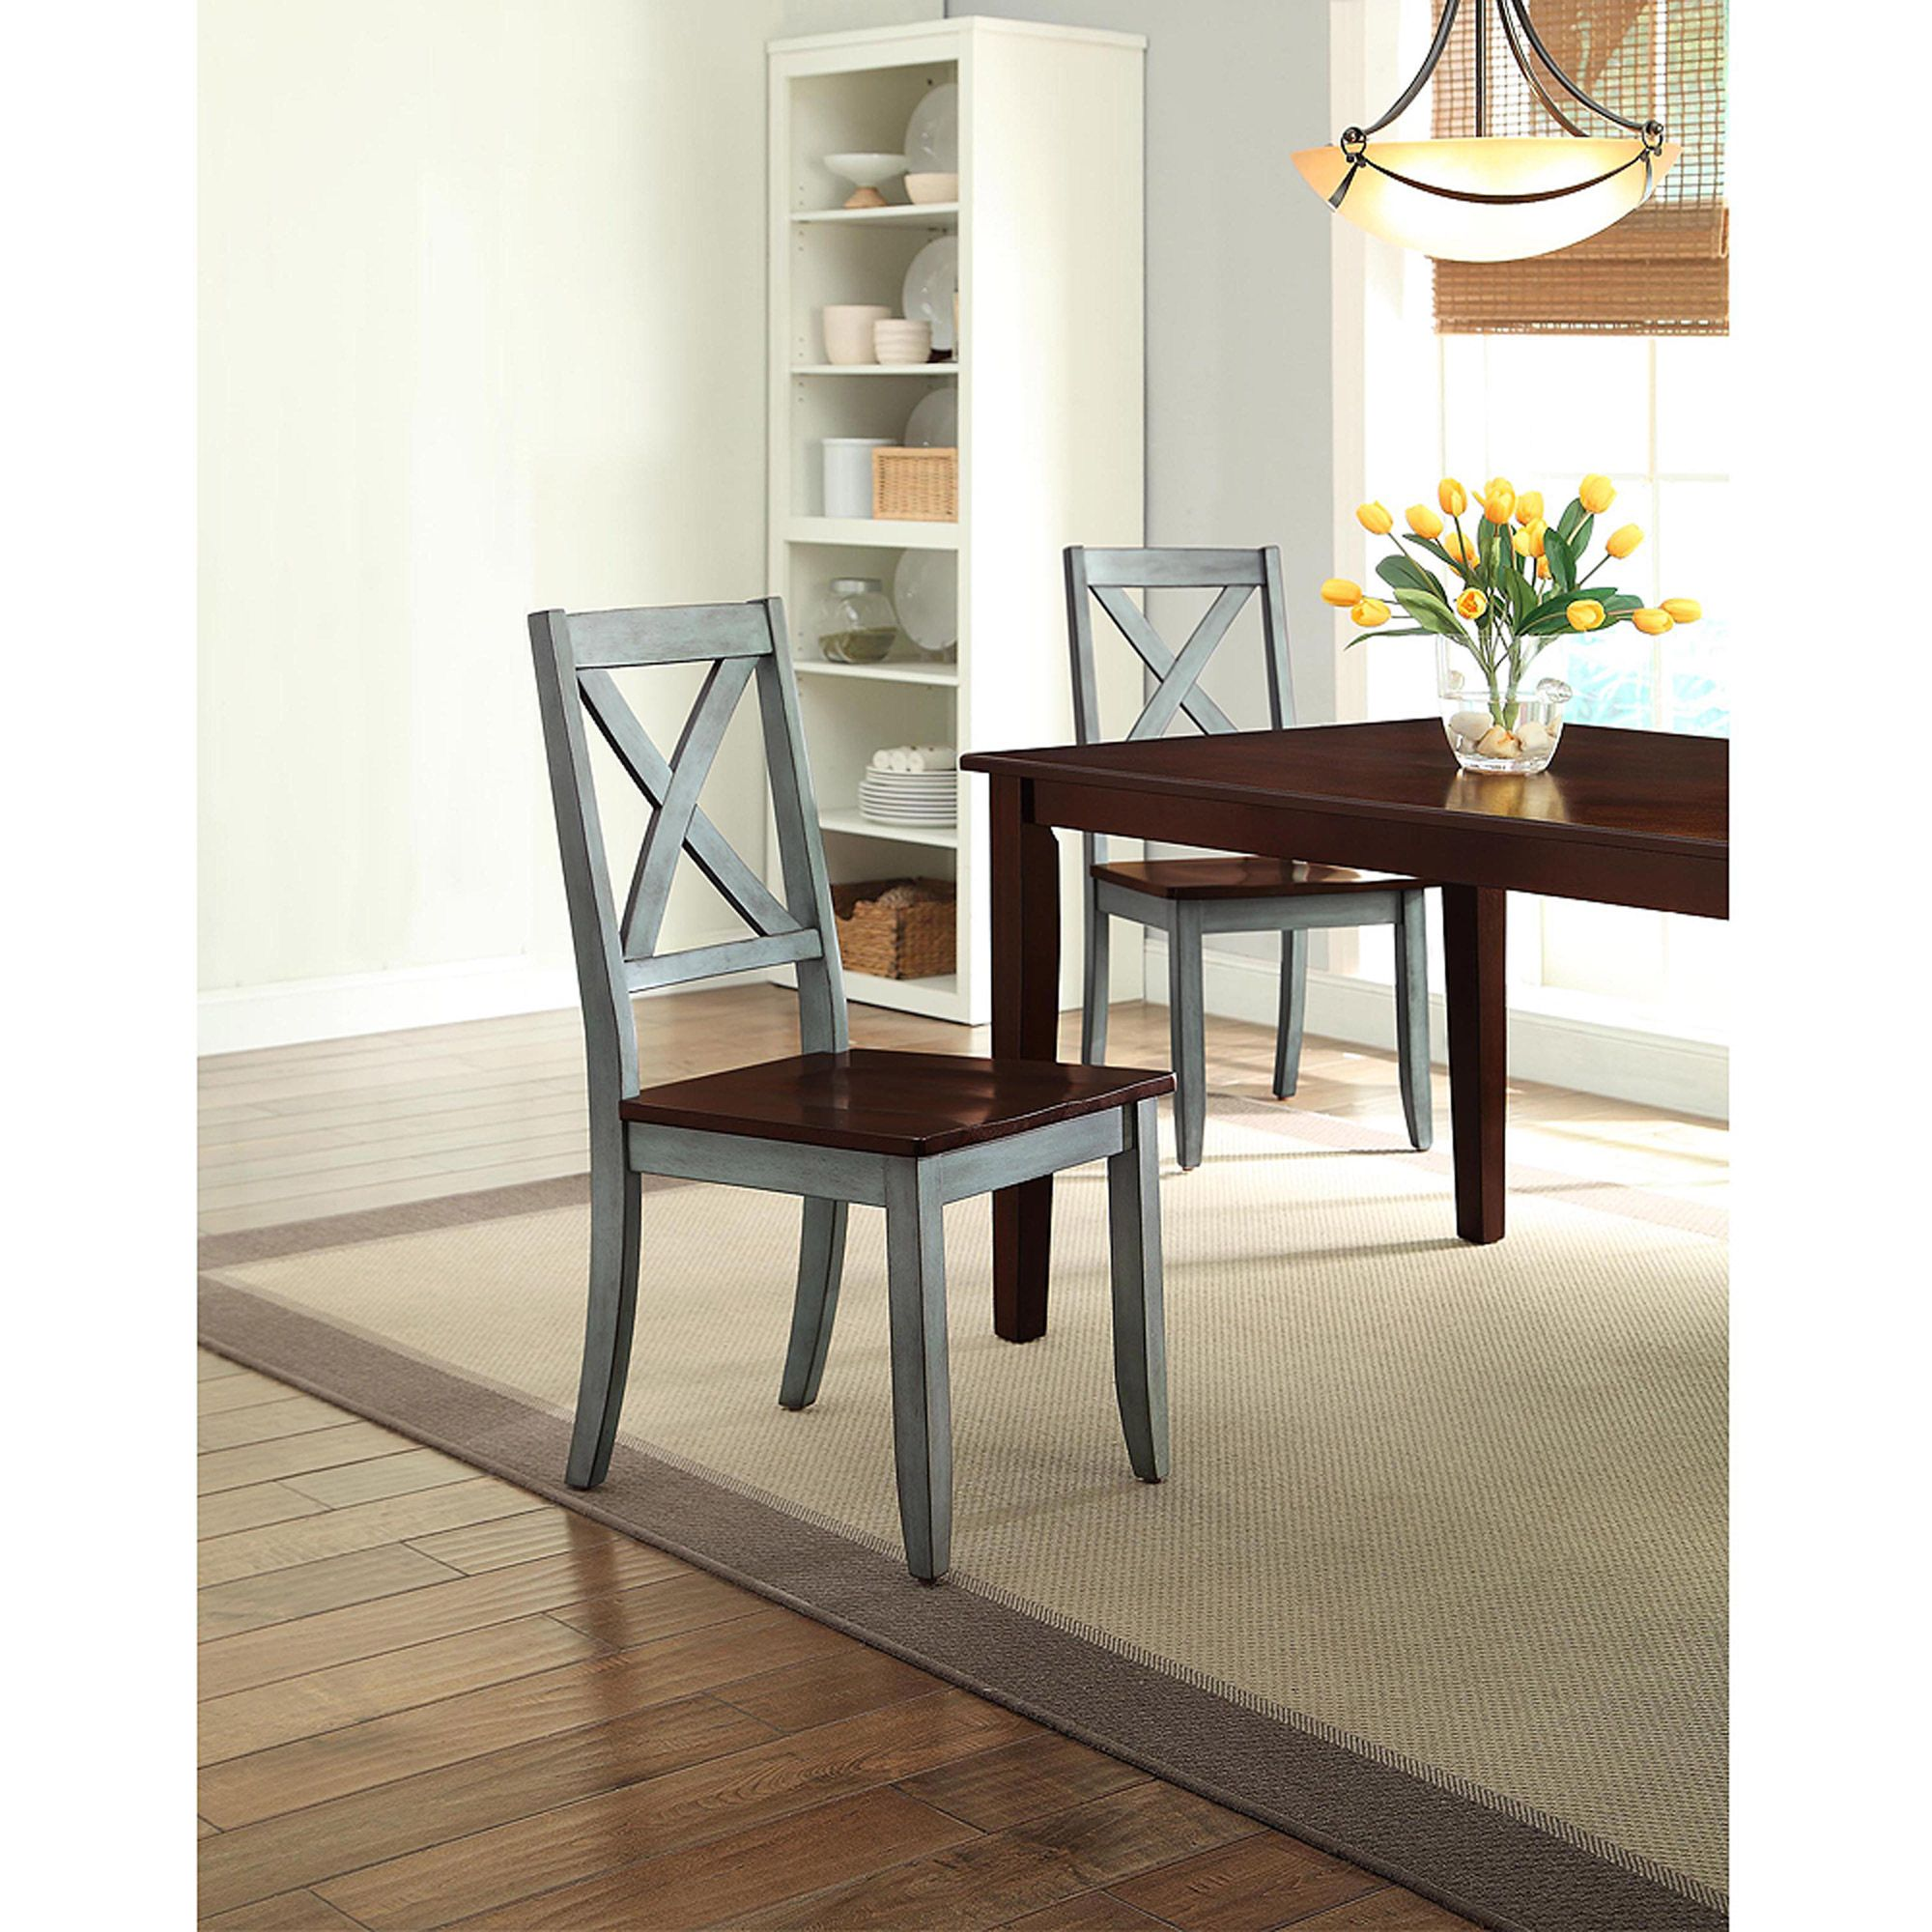 Better Homes and Gardens Maddox Crossing Dining